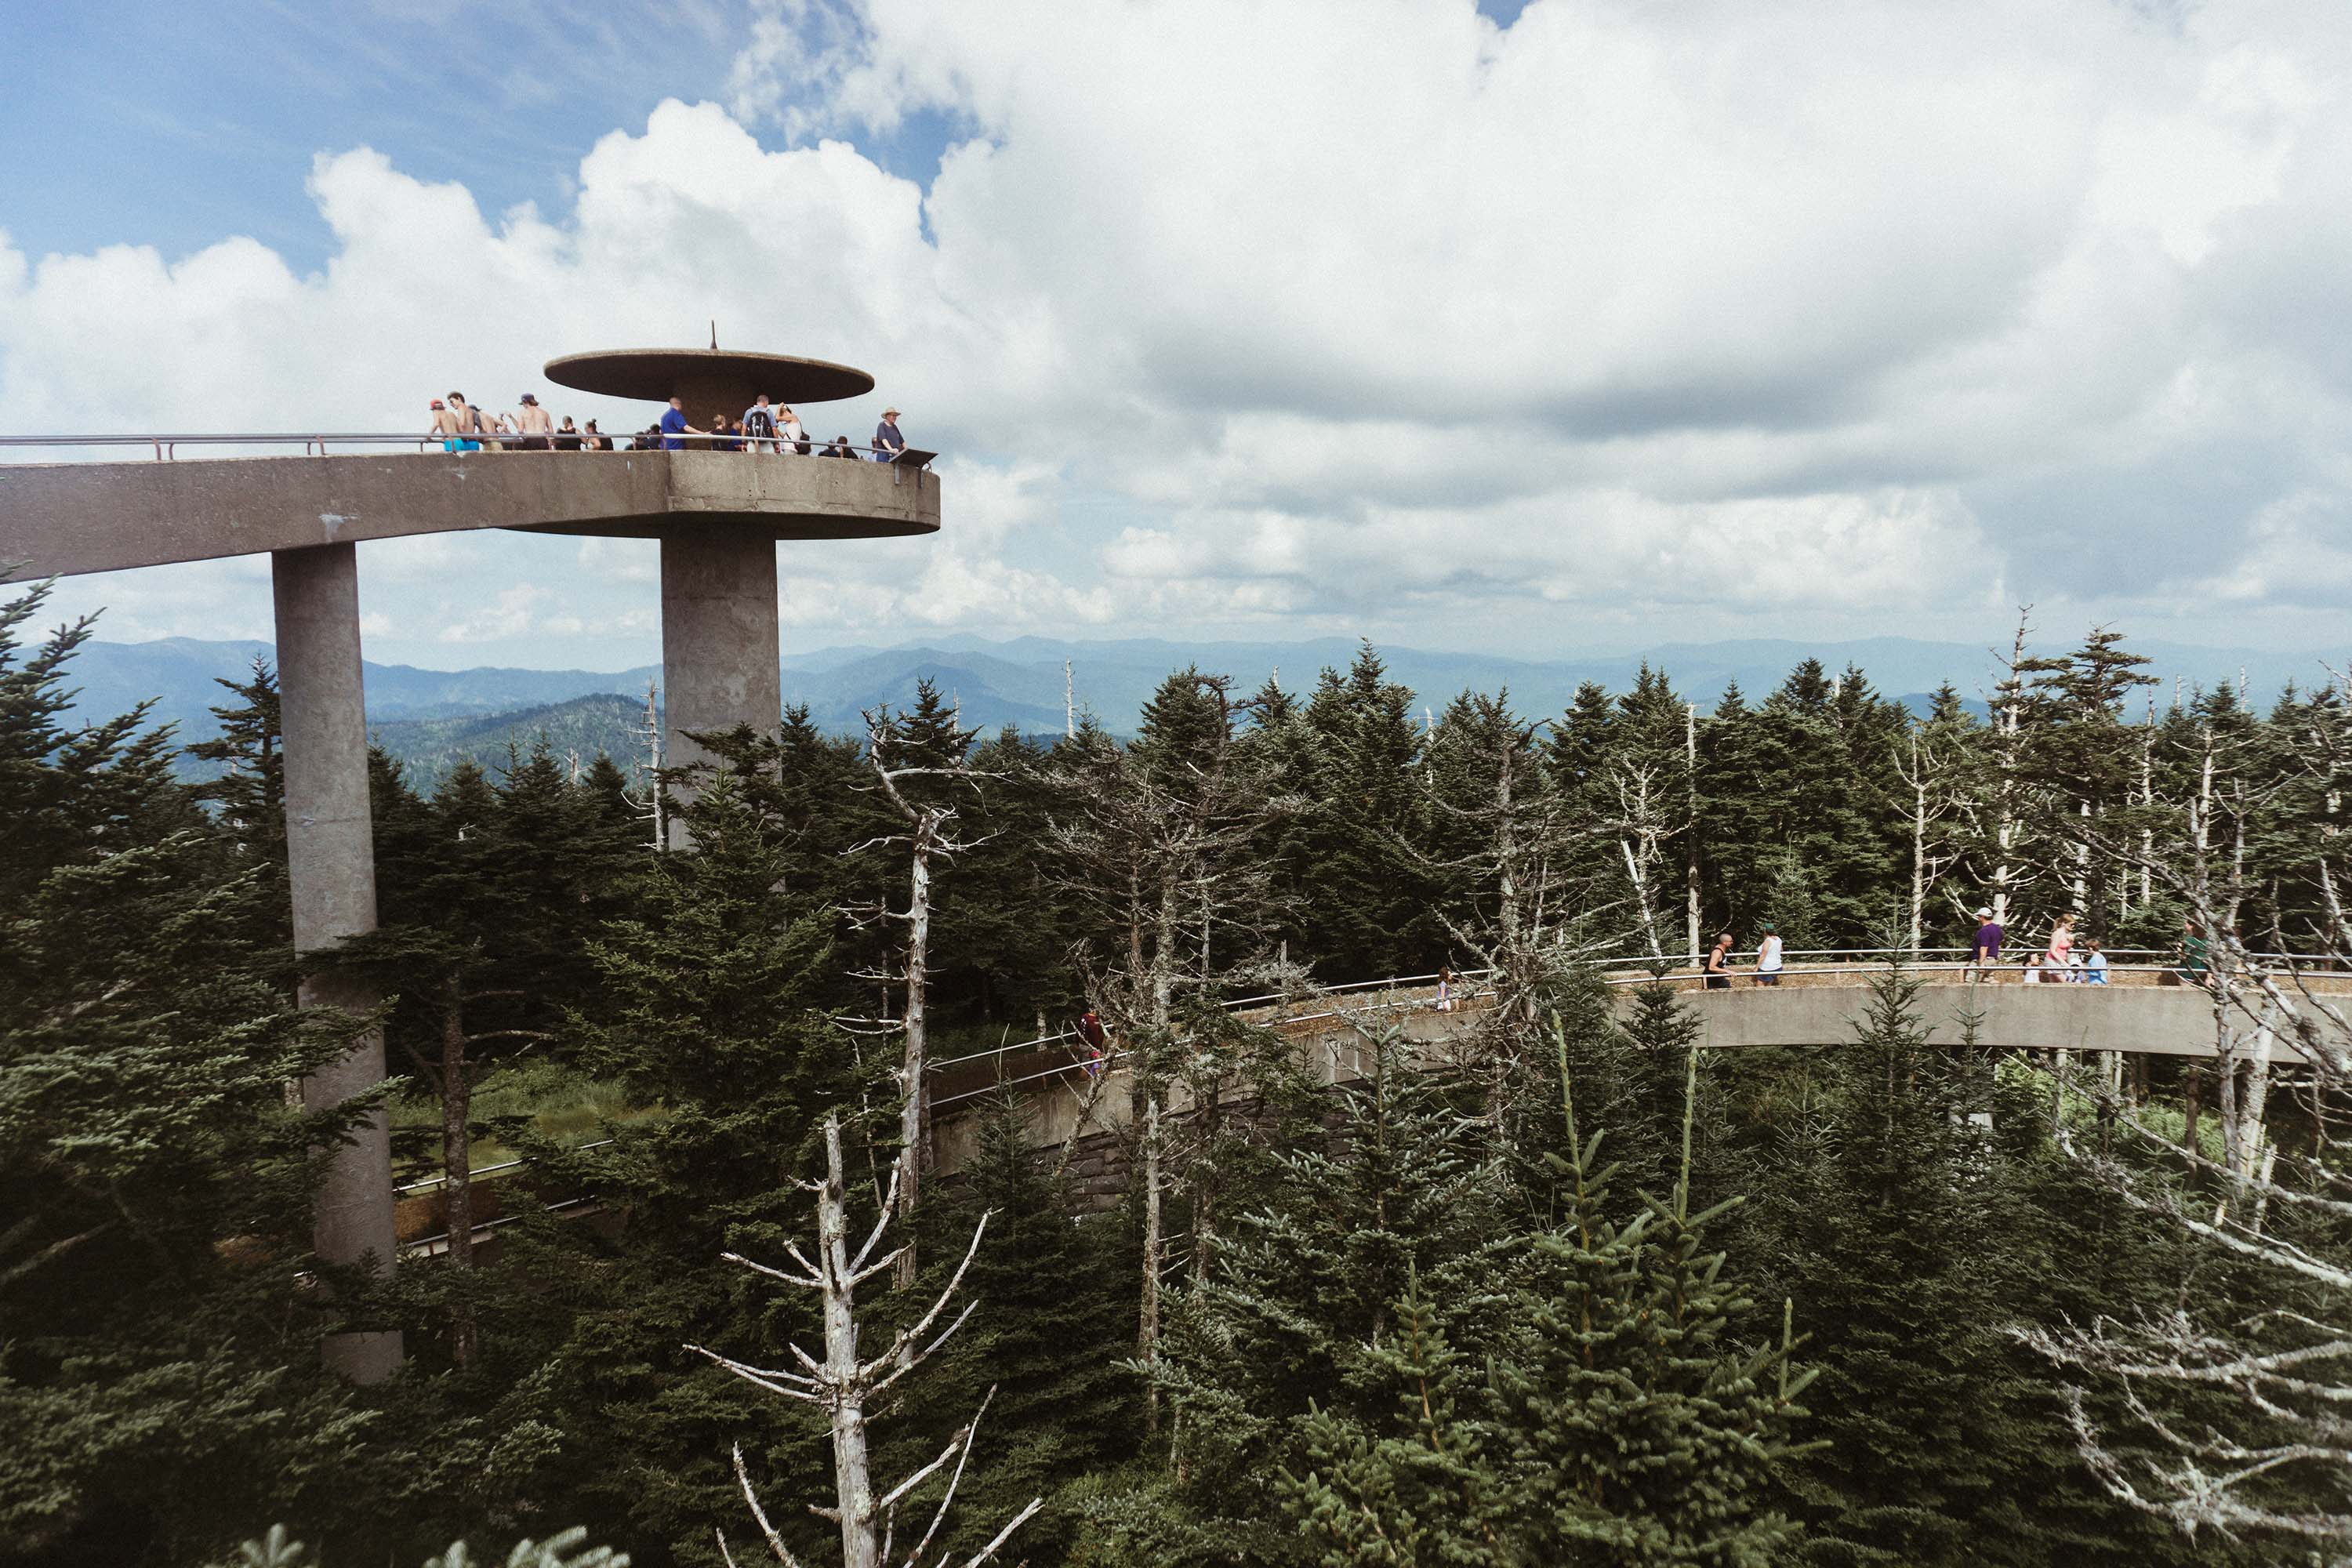 An observation tower accessible by winding walkway.